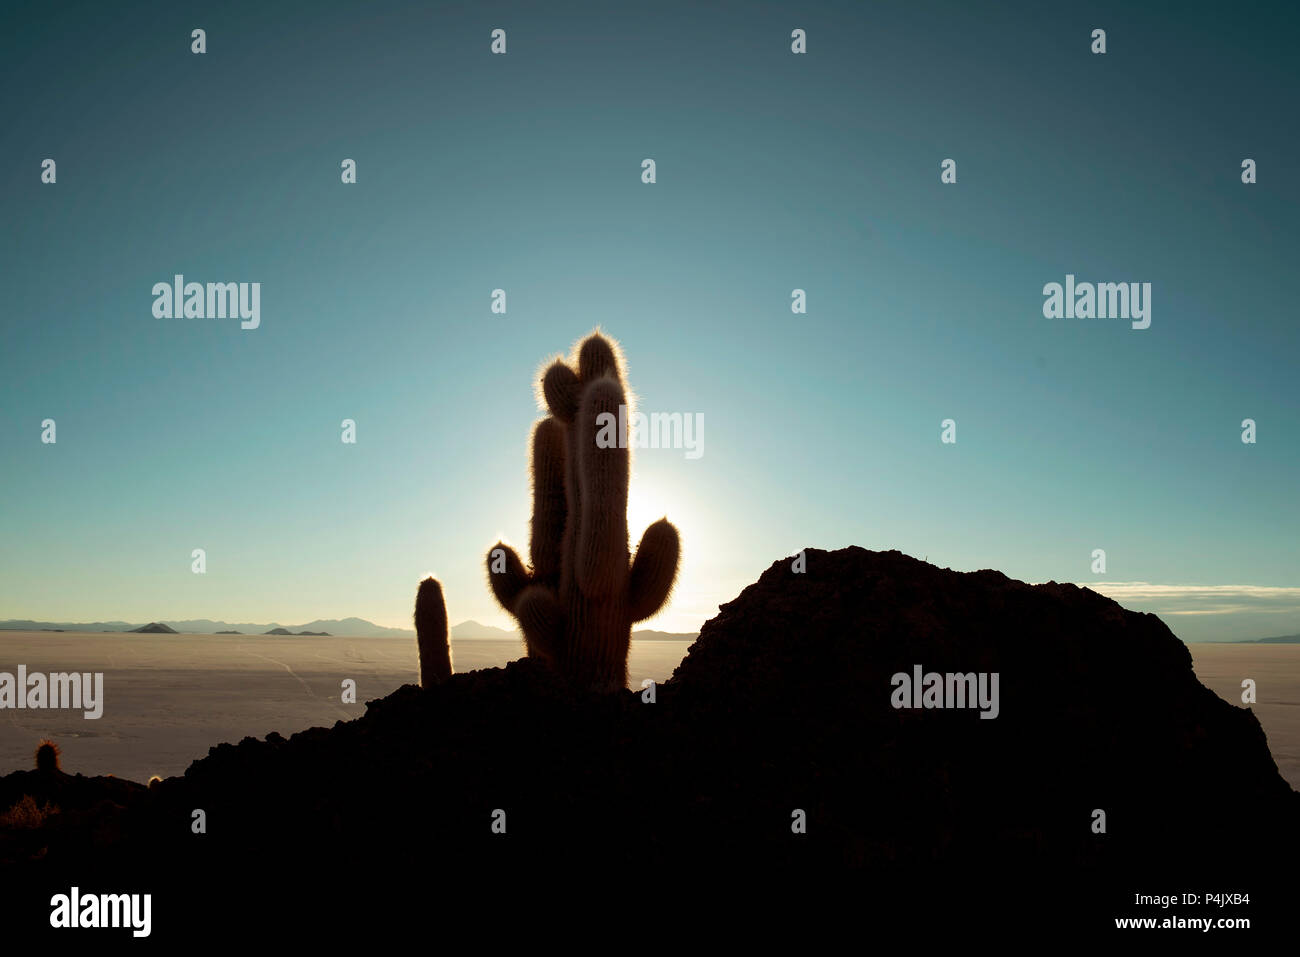 Cactus silhouette in the sunset. Fish Island (Isla del Pescado) in Salar de Uyuni, Bolivia. - Stock Image